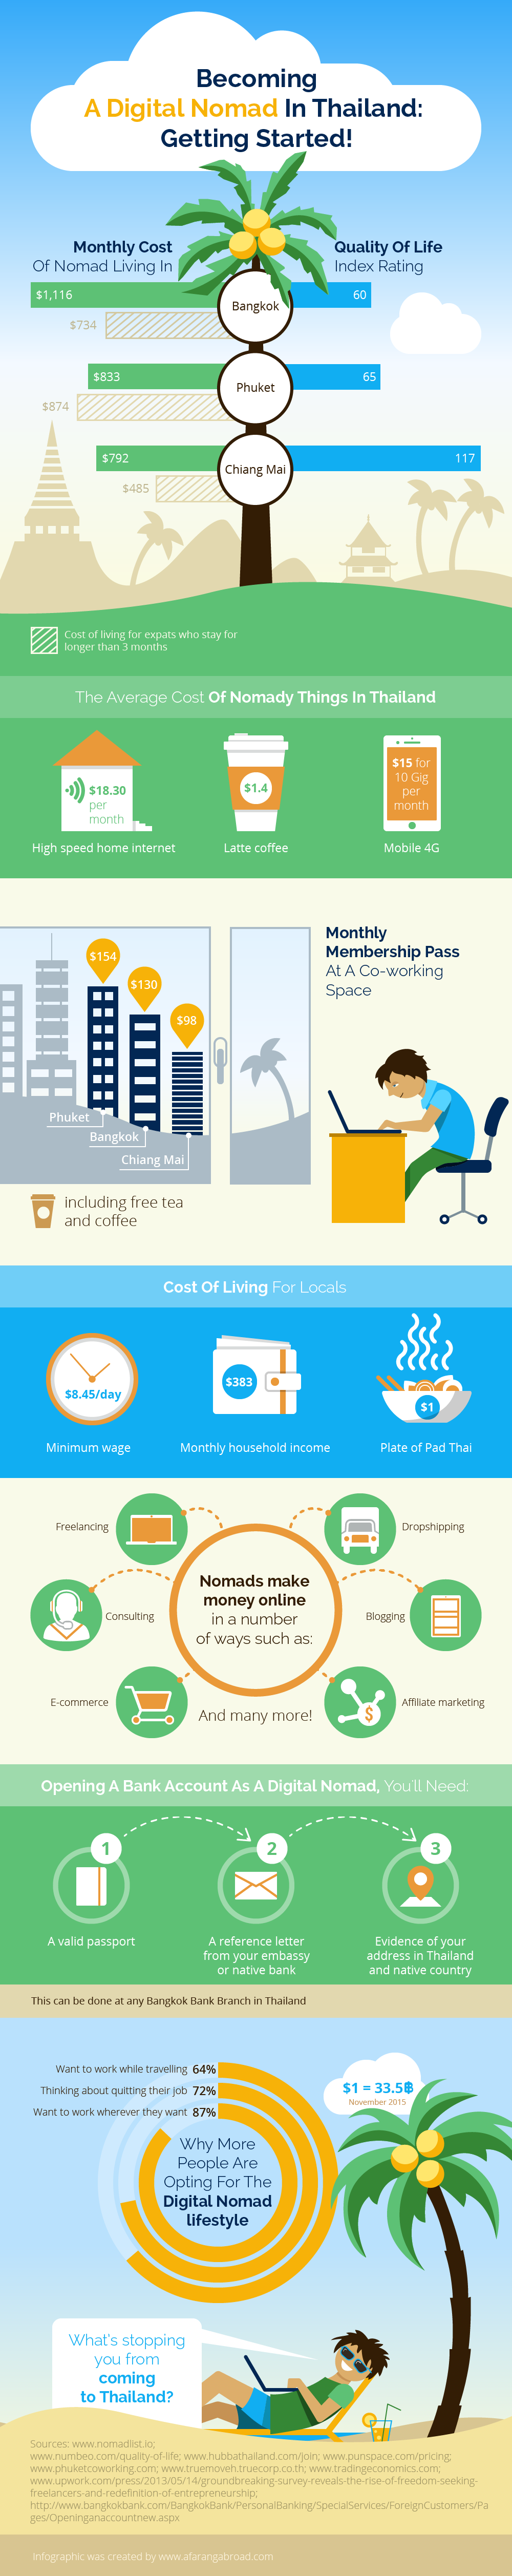 infographic - Digital nomad in Thailand